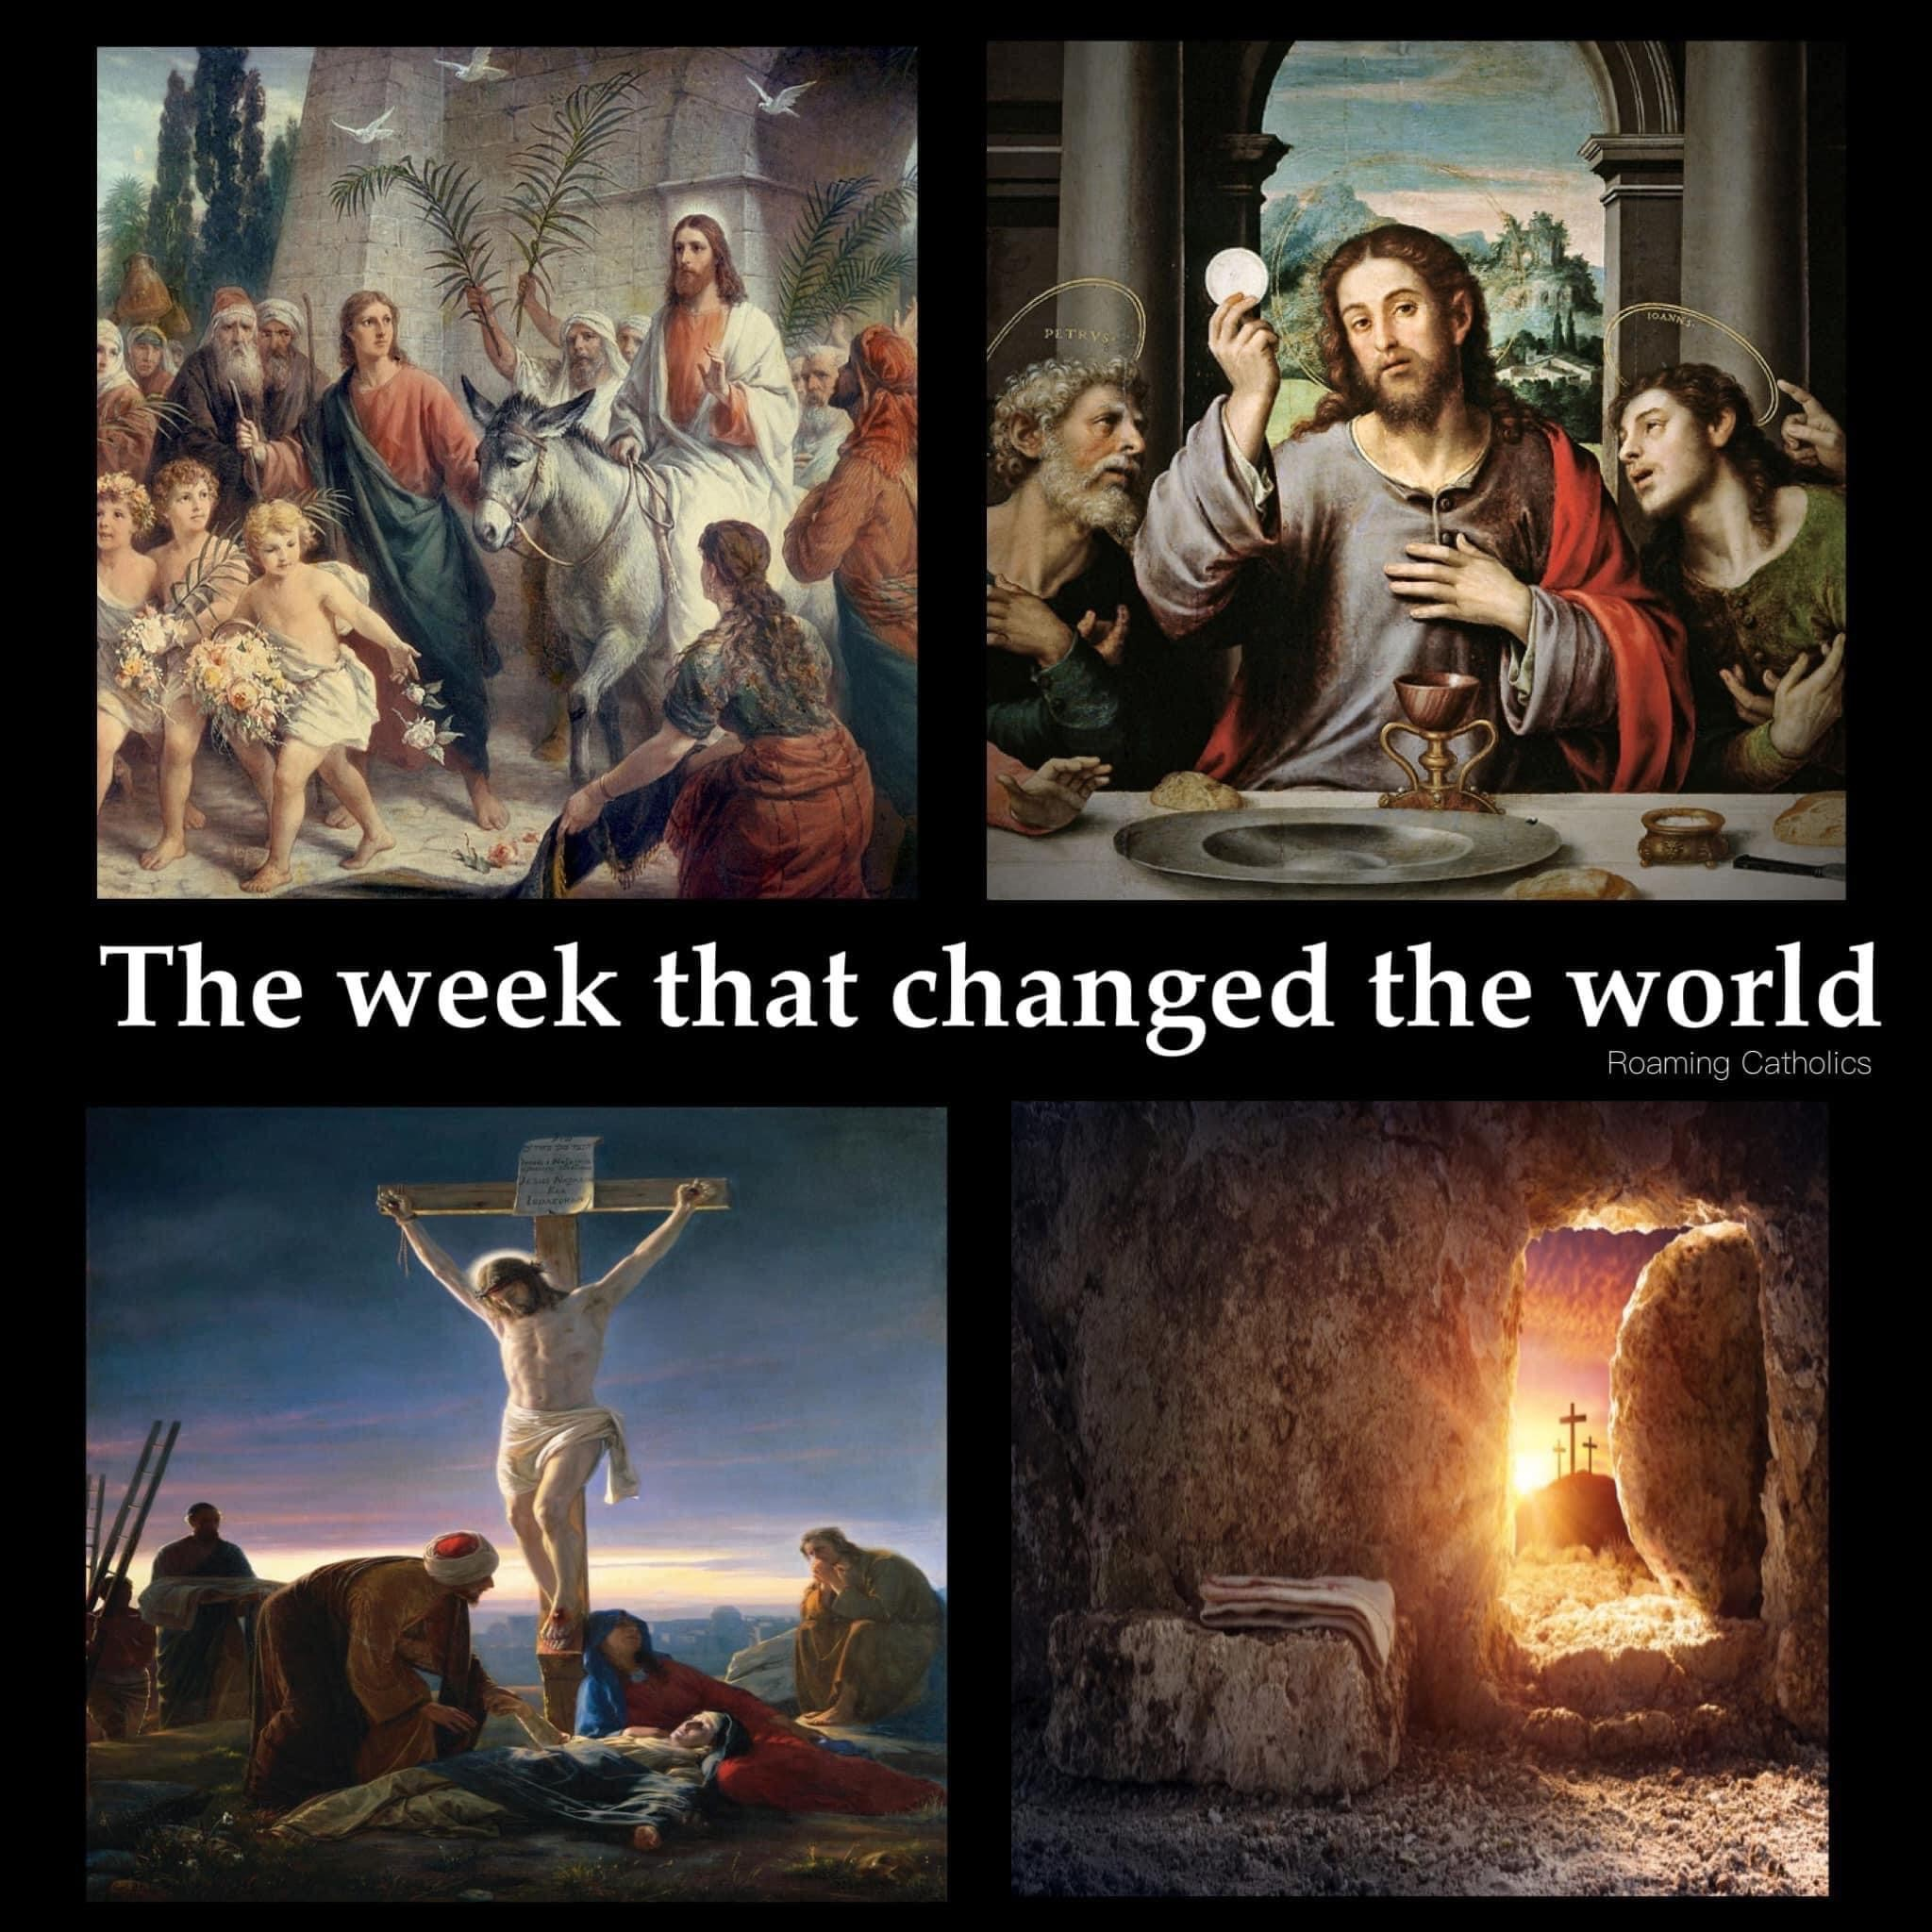 A collection of paintings showing the Passion and Resurrection of Christ